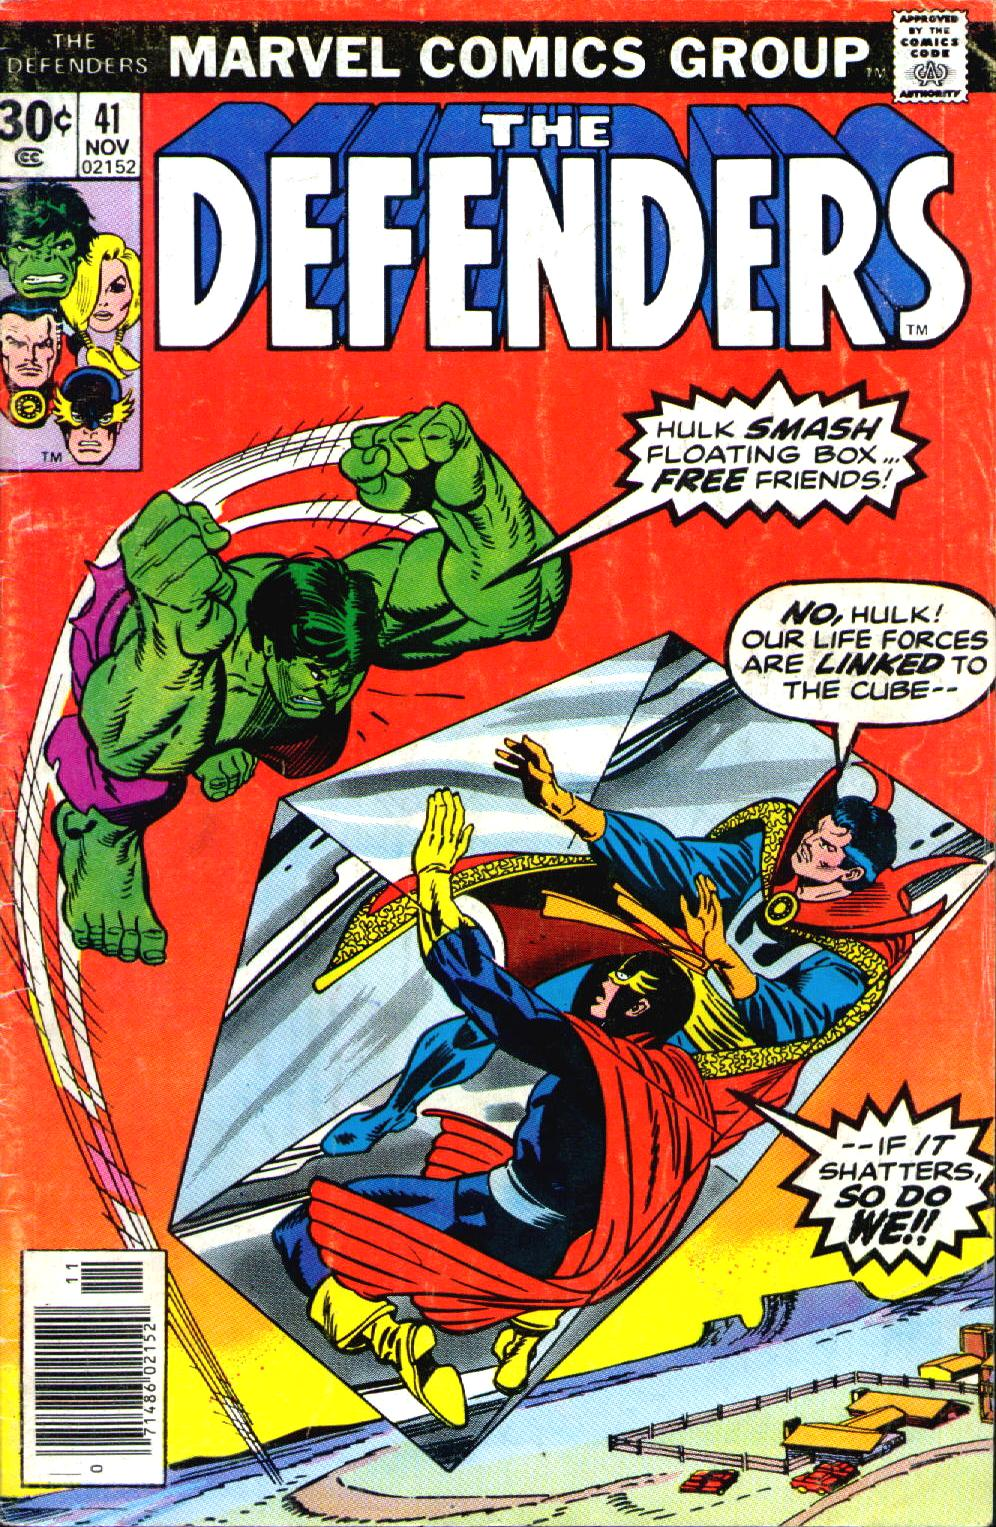 The Defenders (1972) 41 Page 1